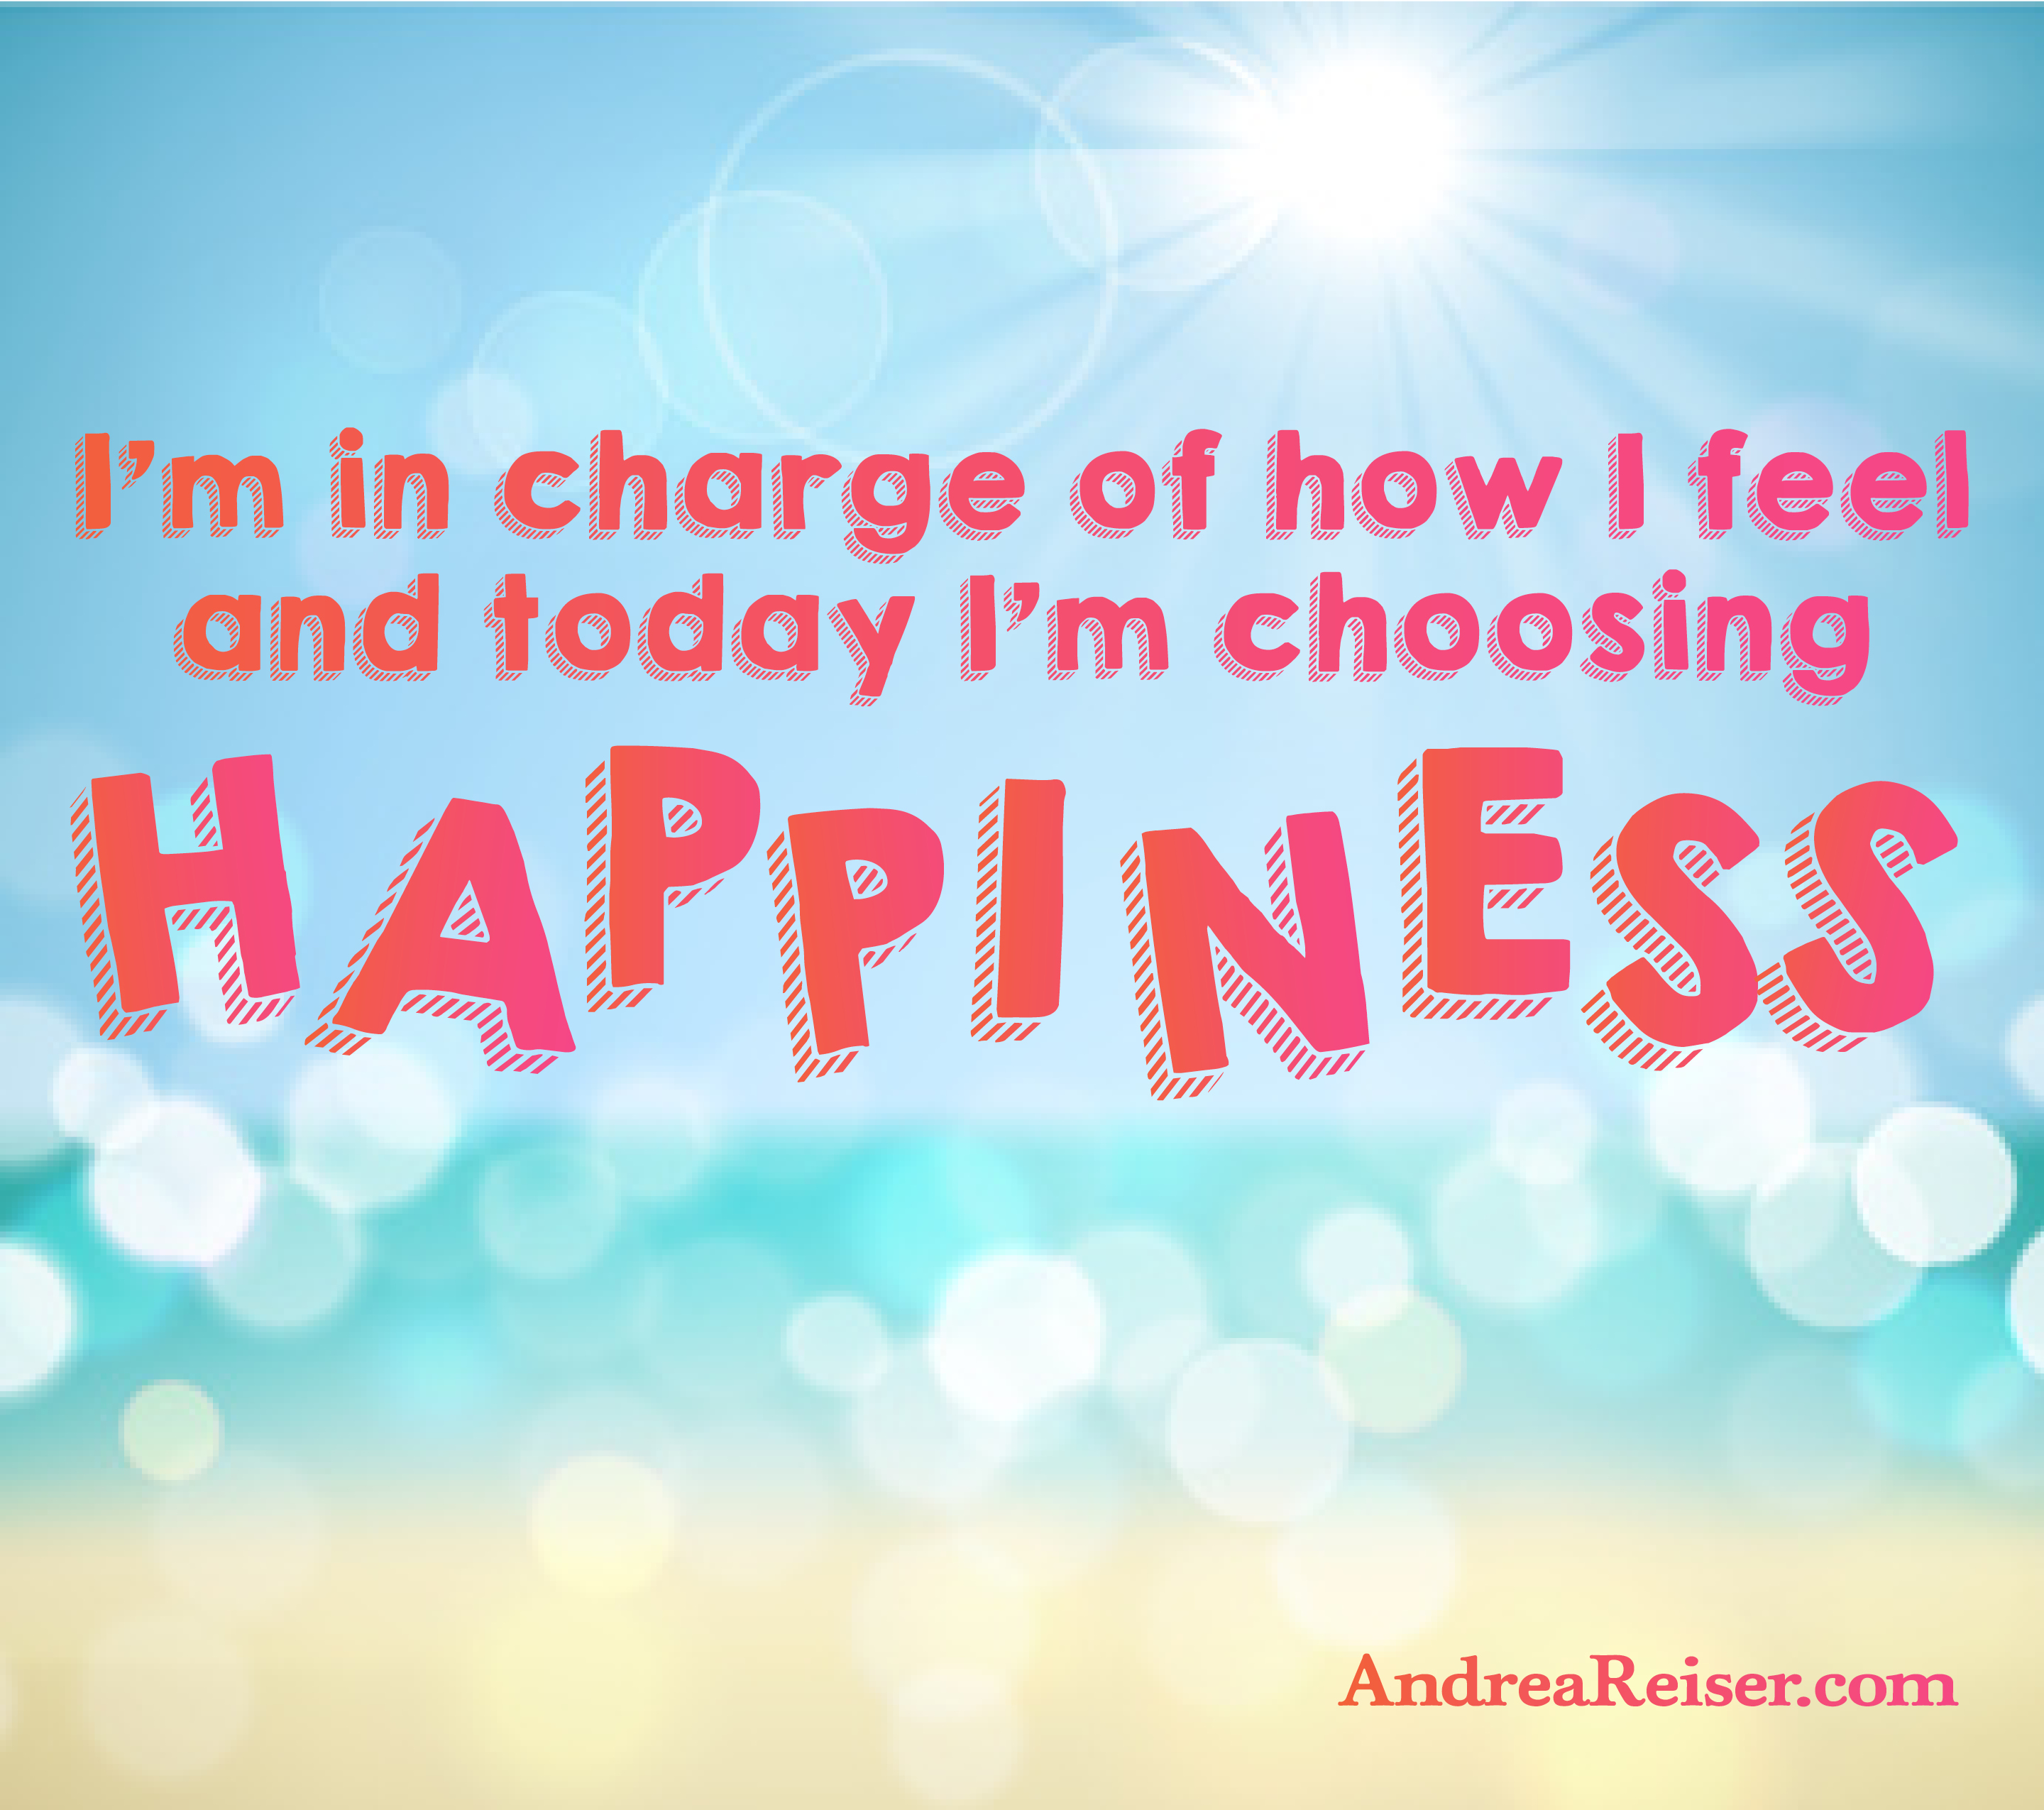 Today I M Choosing Happiness